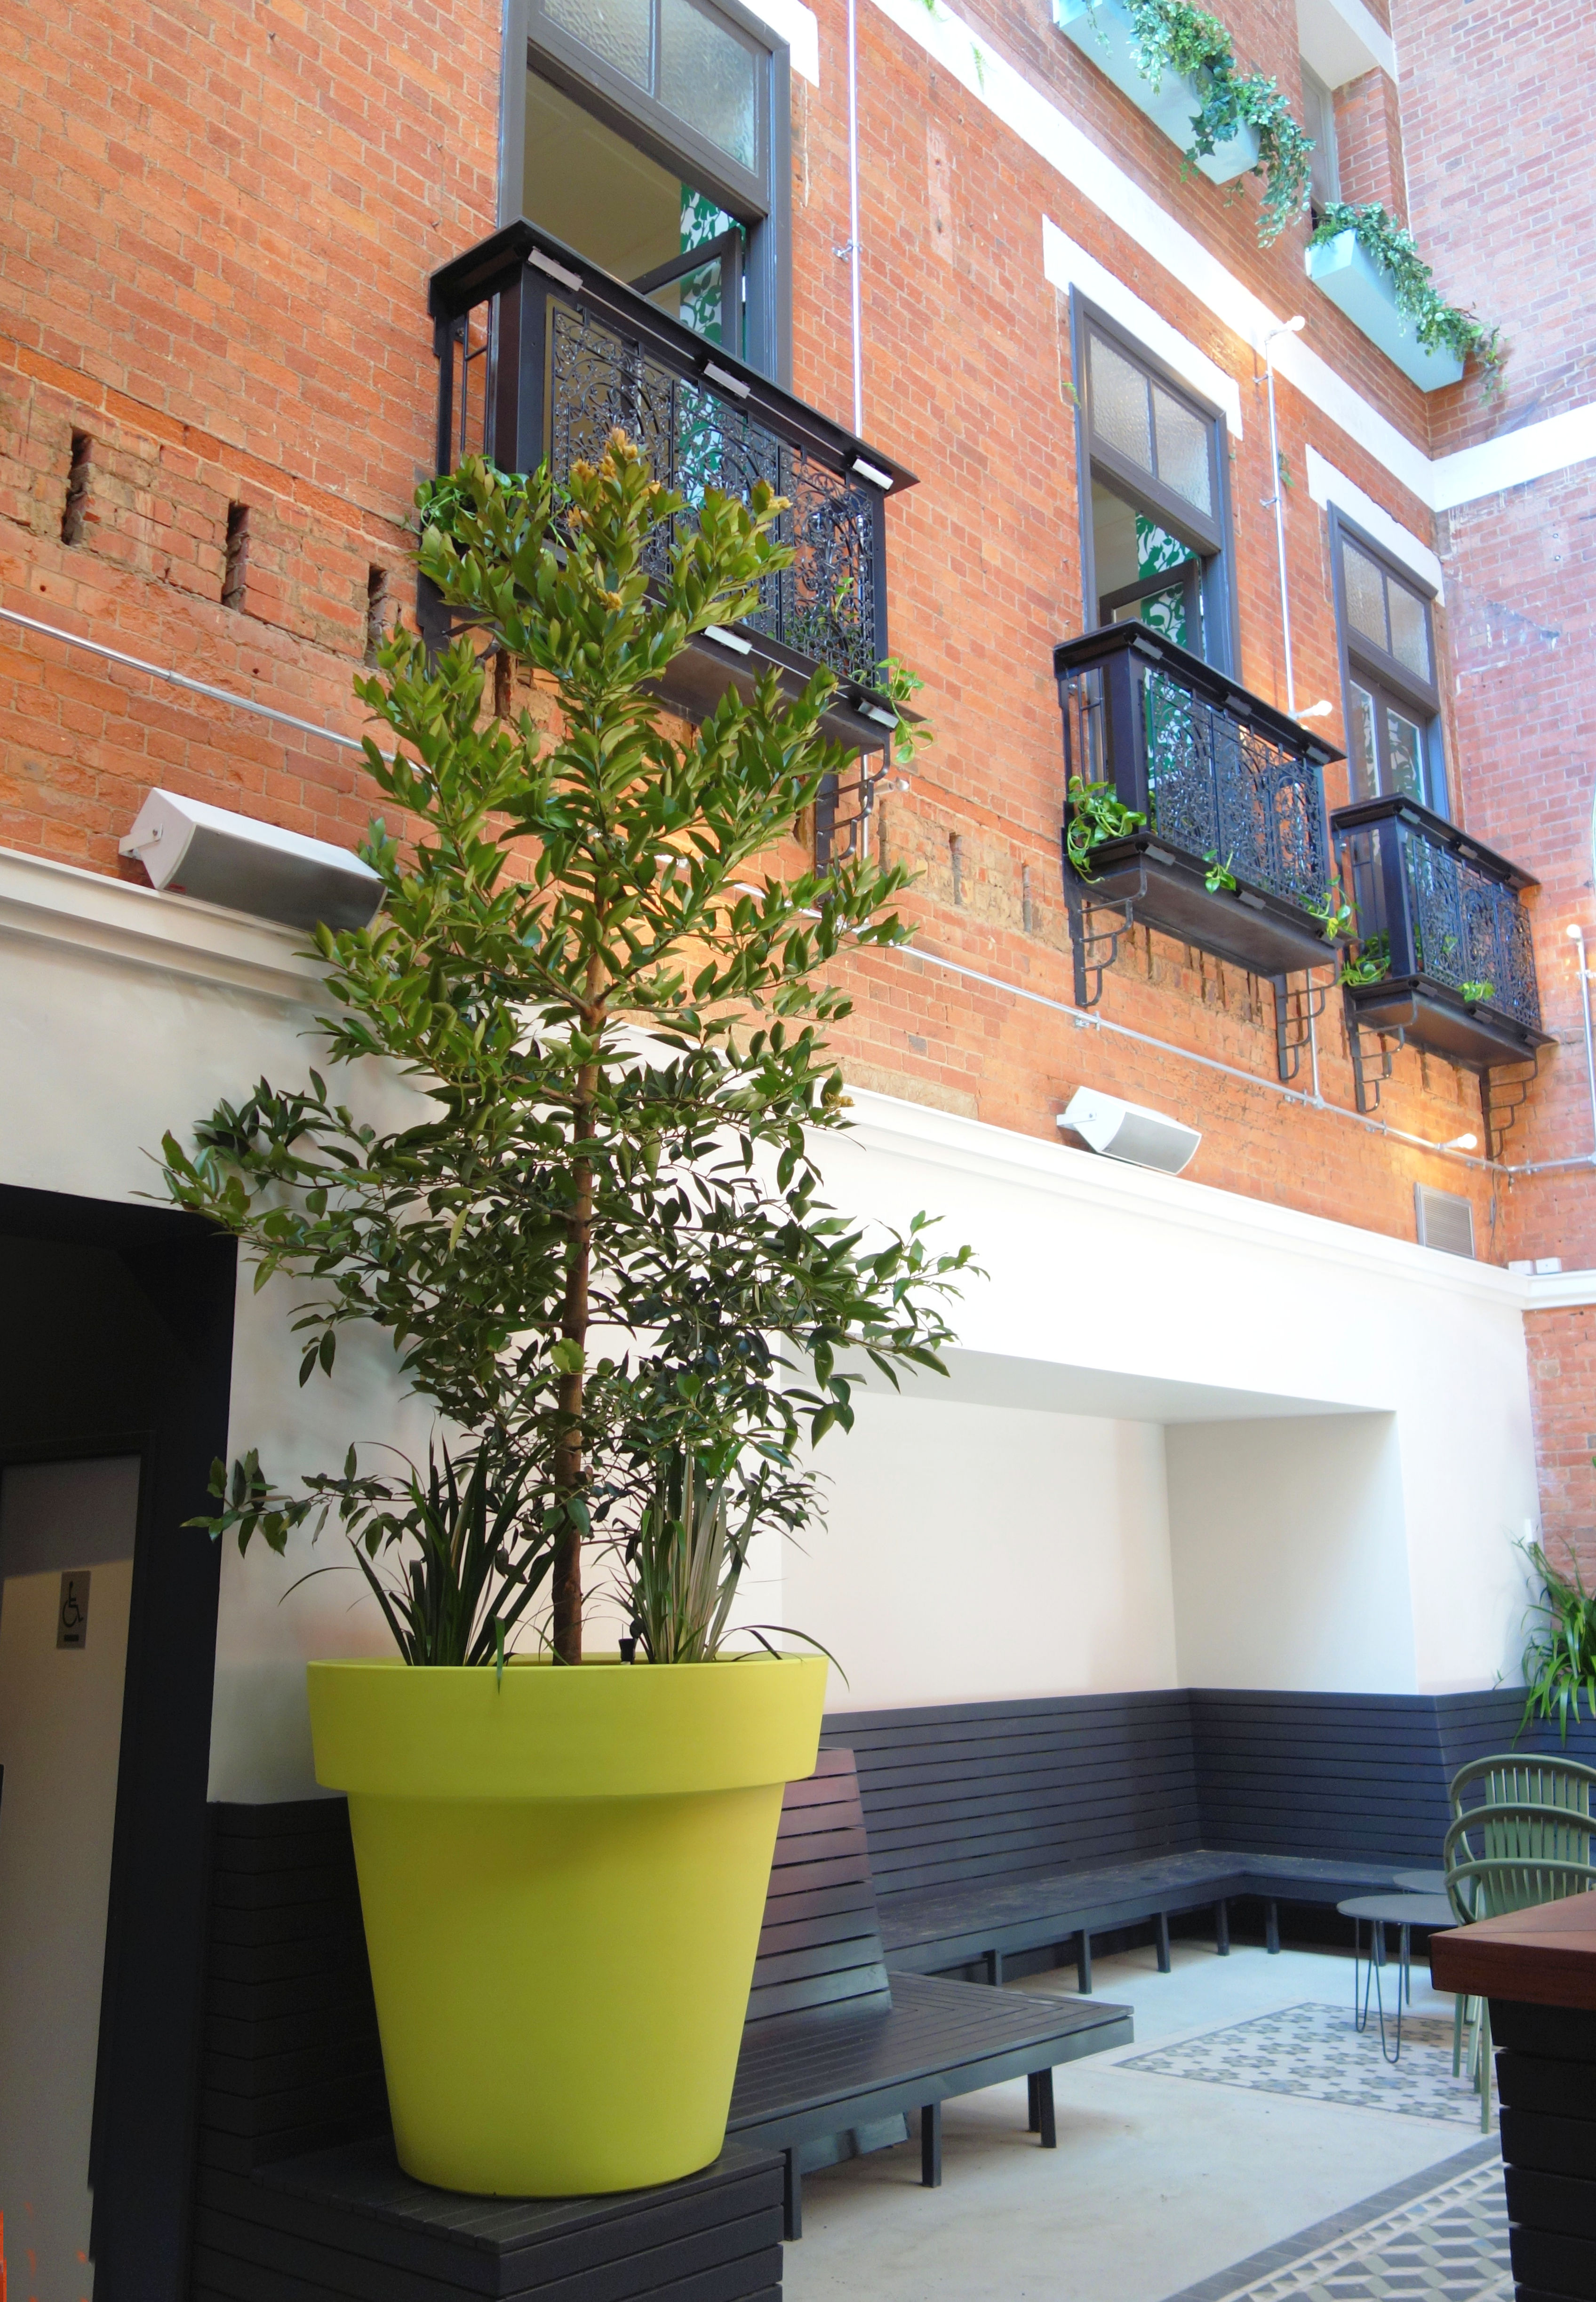 Showing a huge Diva Planter with a Kauri Pine in a courtyard.